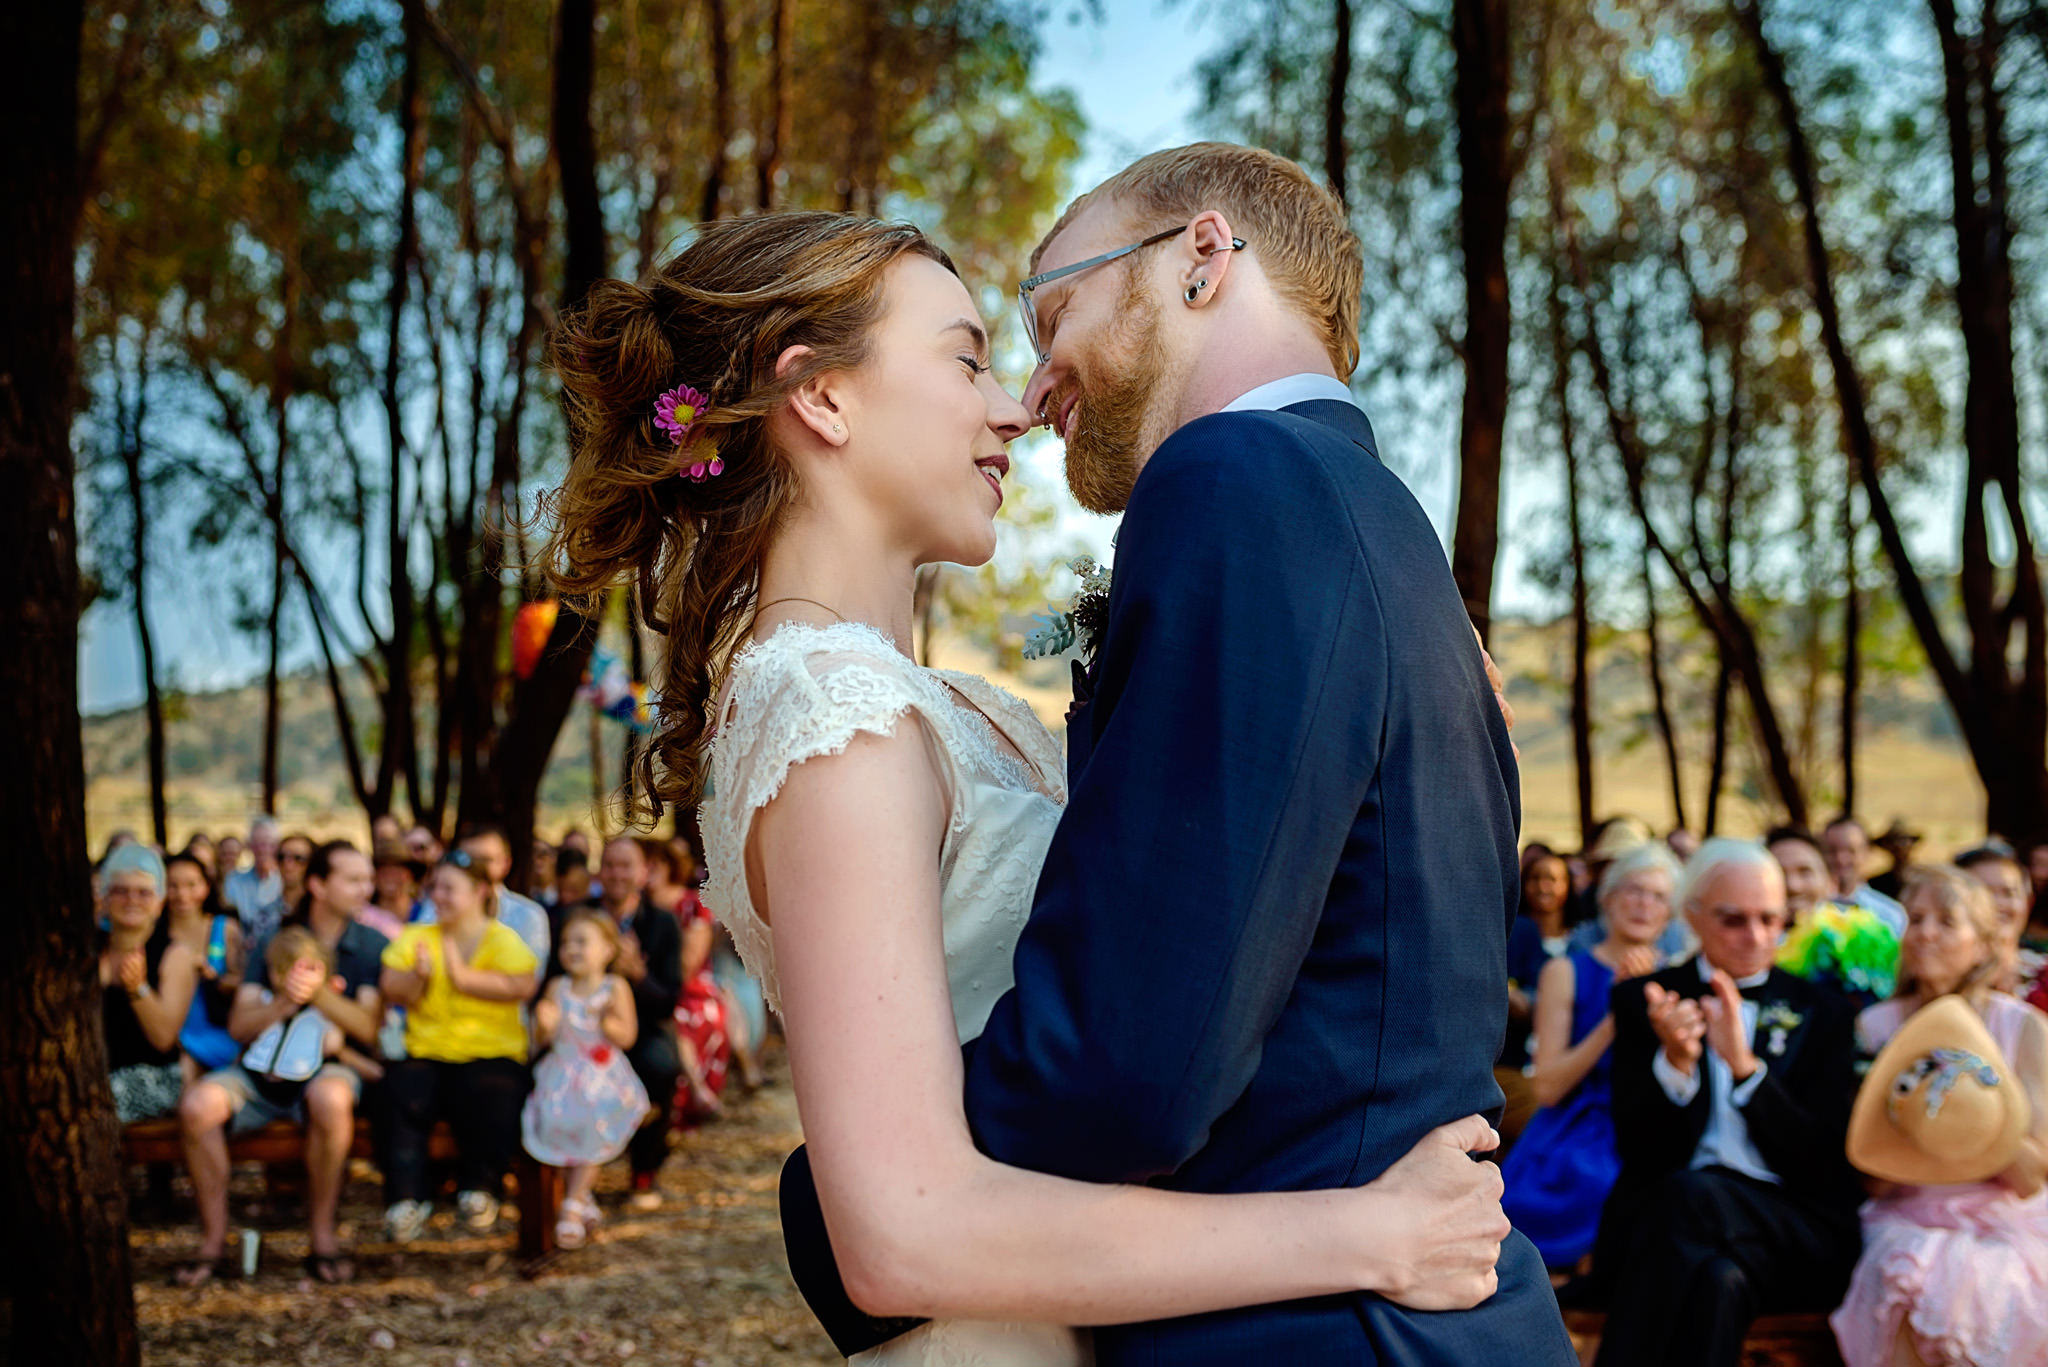 Sarah and Christon's wedding at Bar SZ Ranch in Paicines, California.